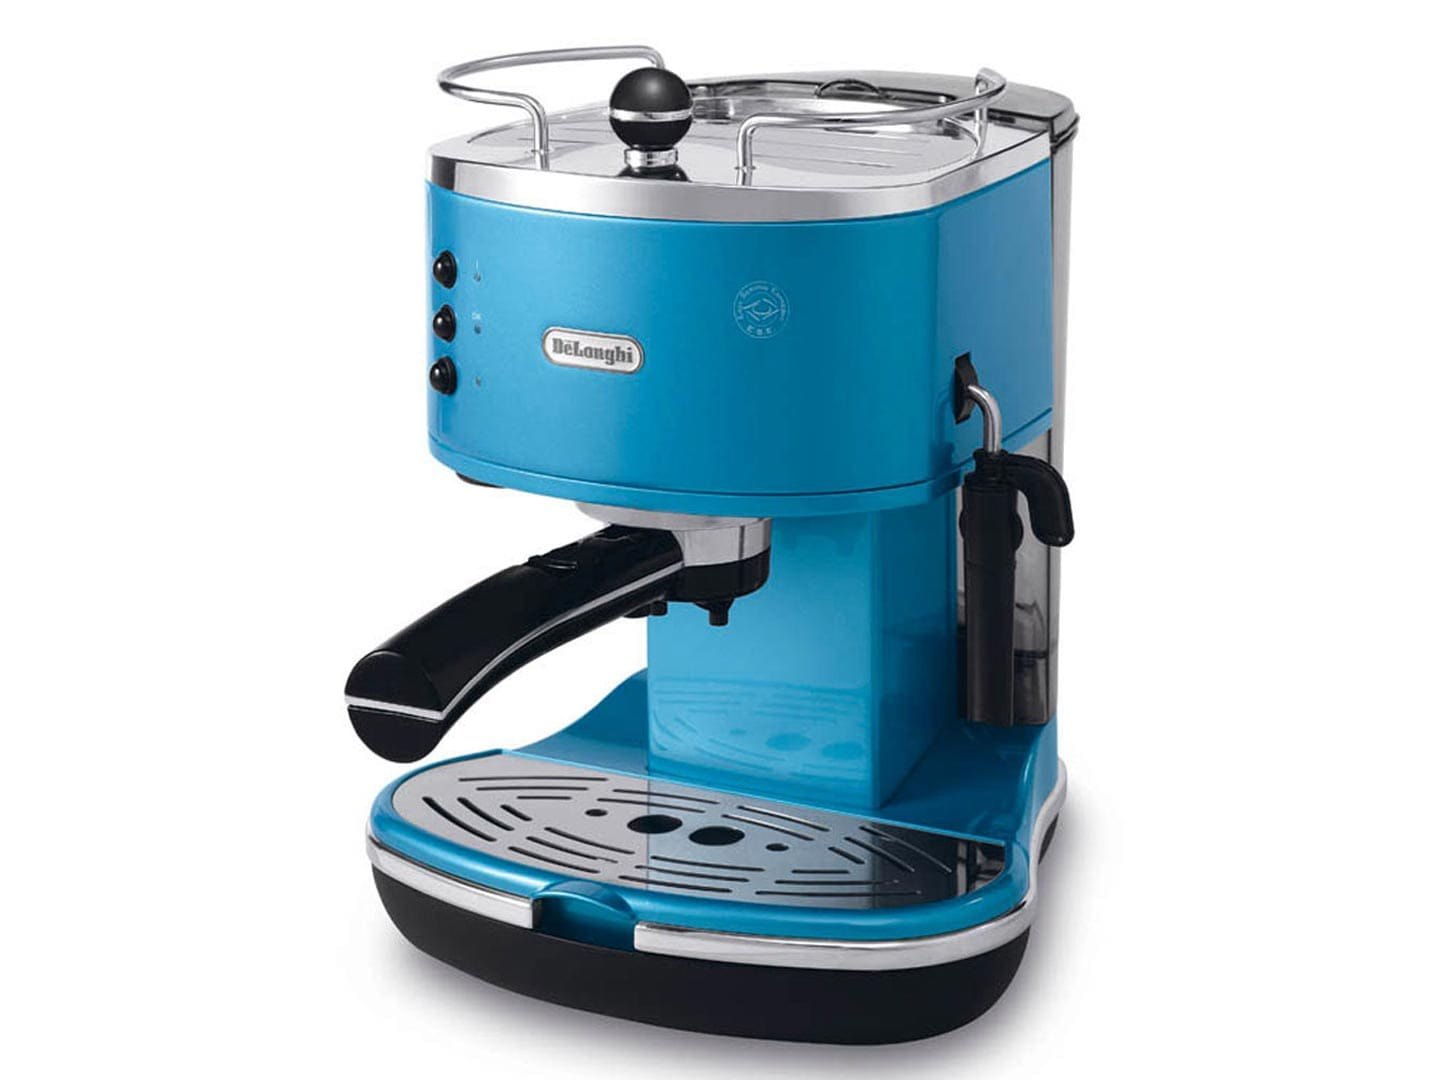 Blue Icona Pump - Coffee Makers - DeLonghi New Zealand